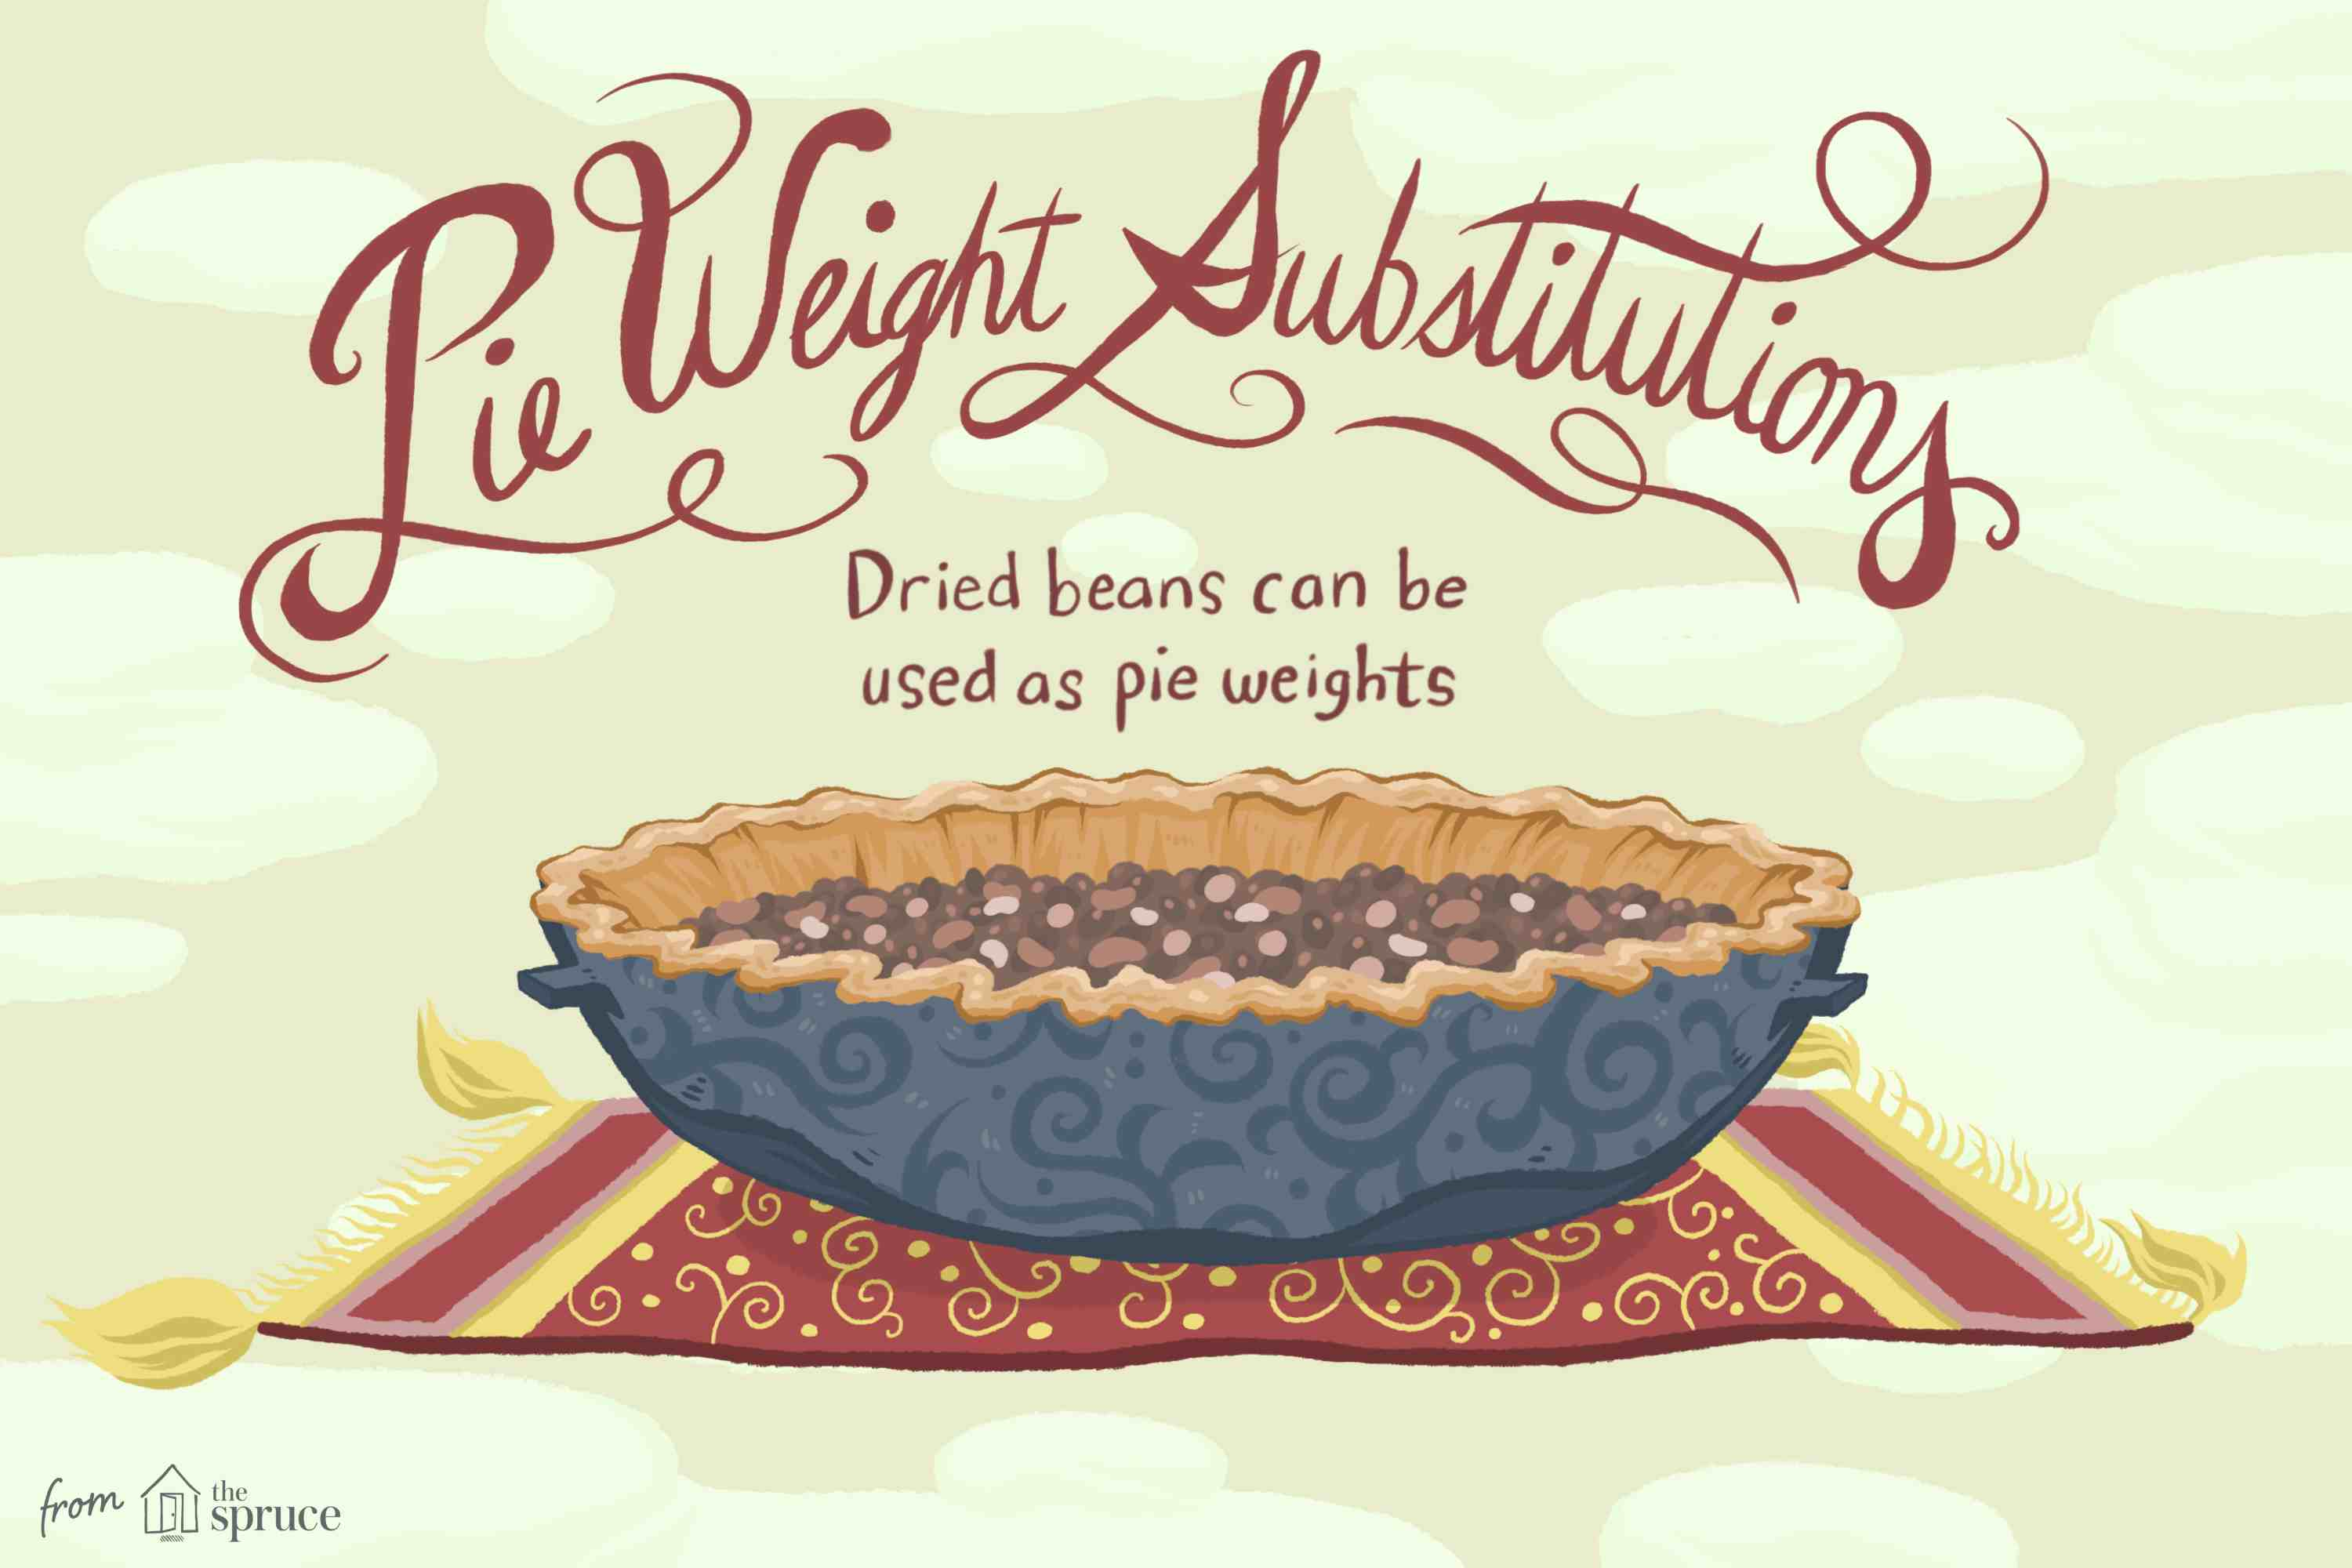 Illustration showing dried beans used as pie weights.